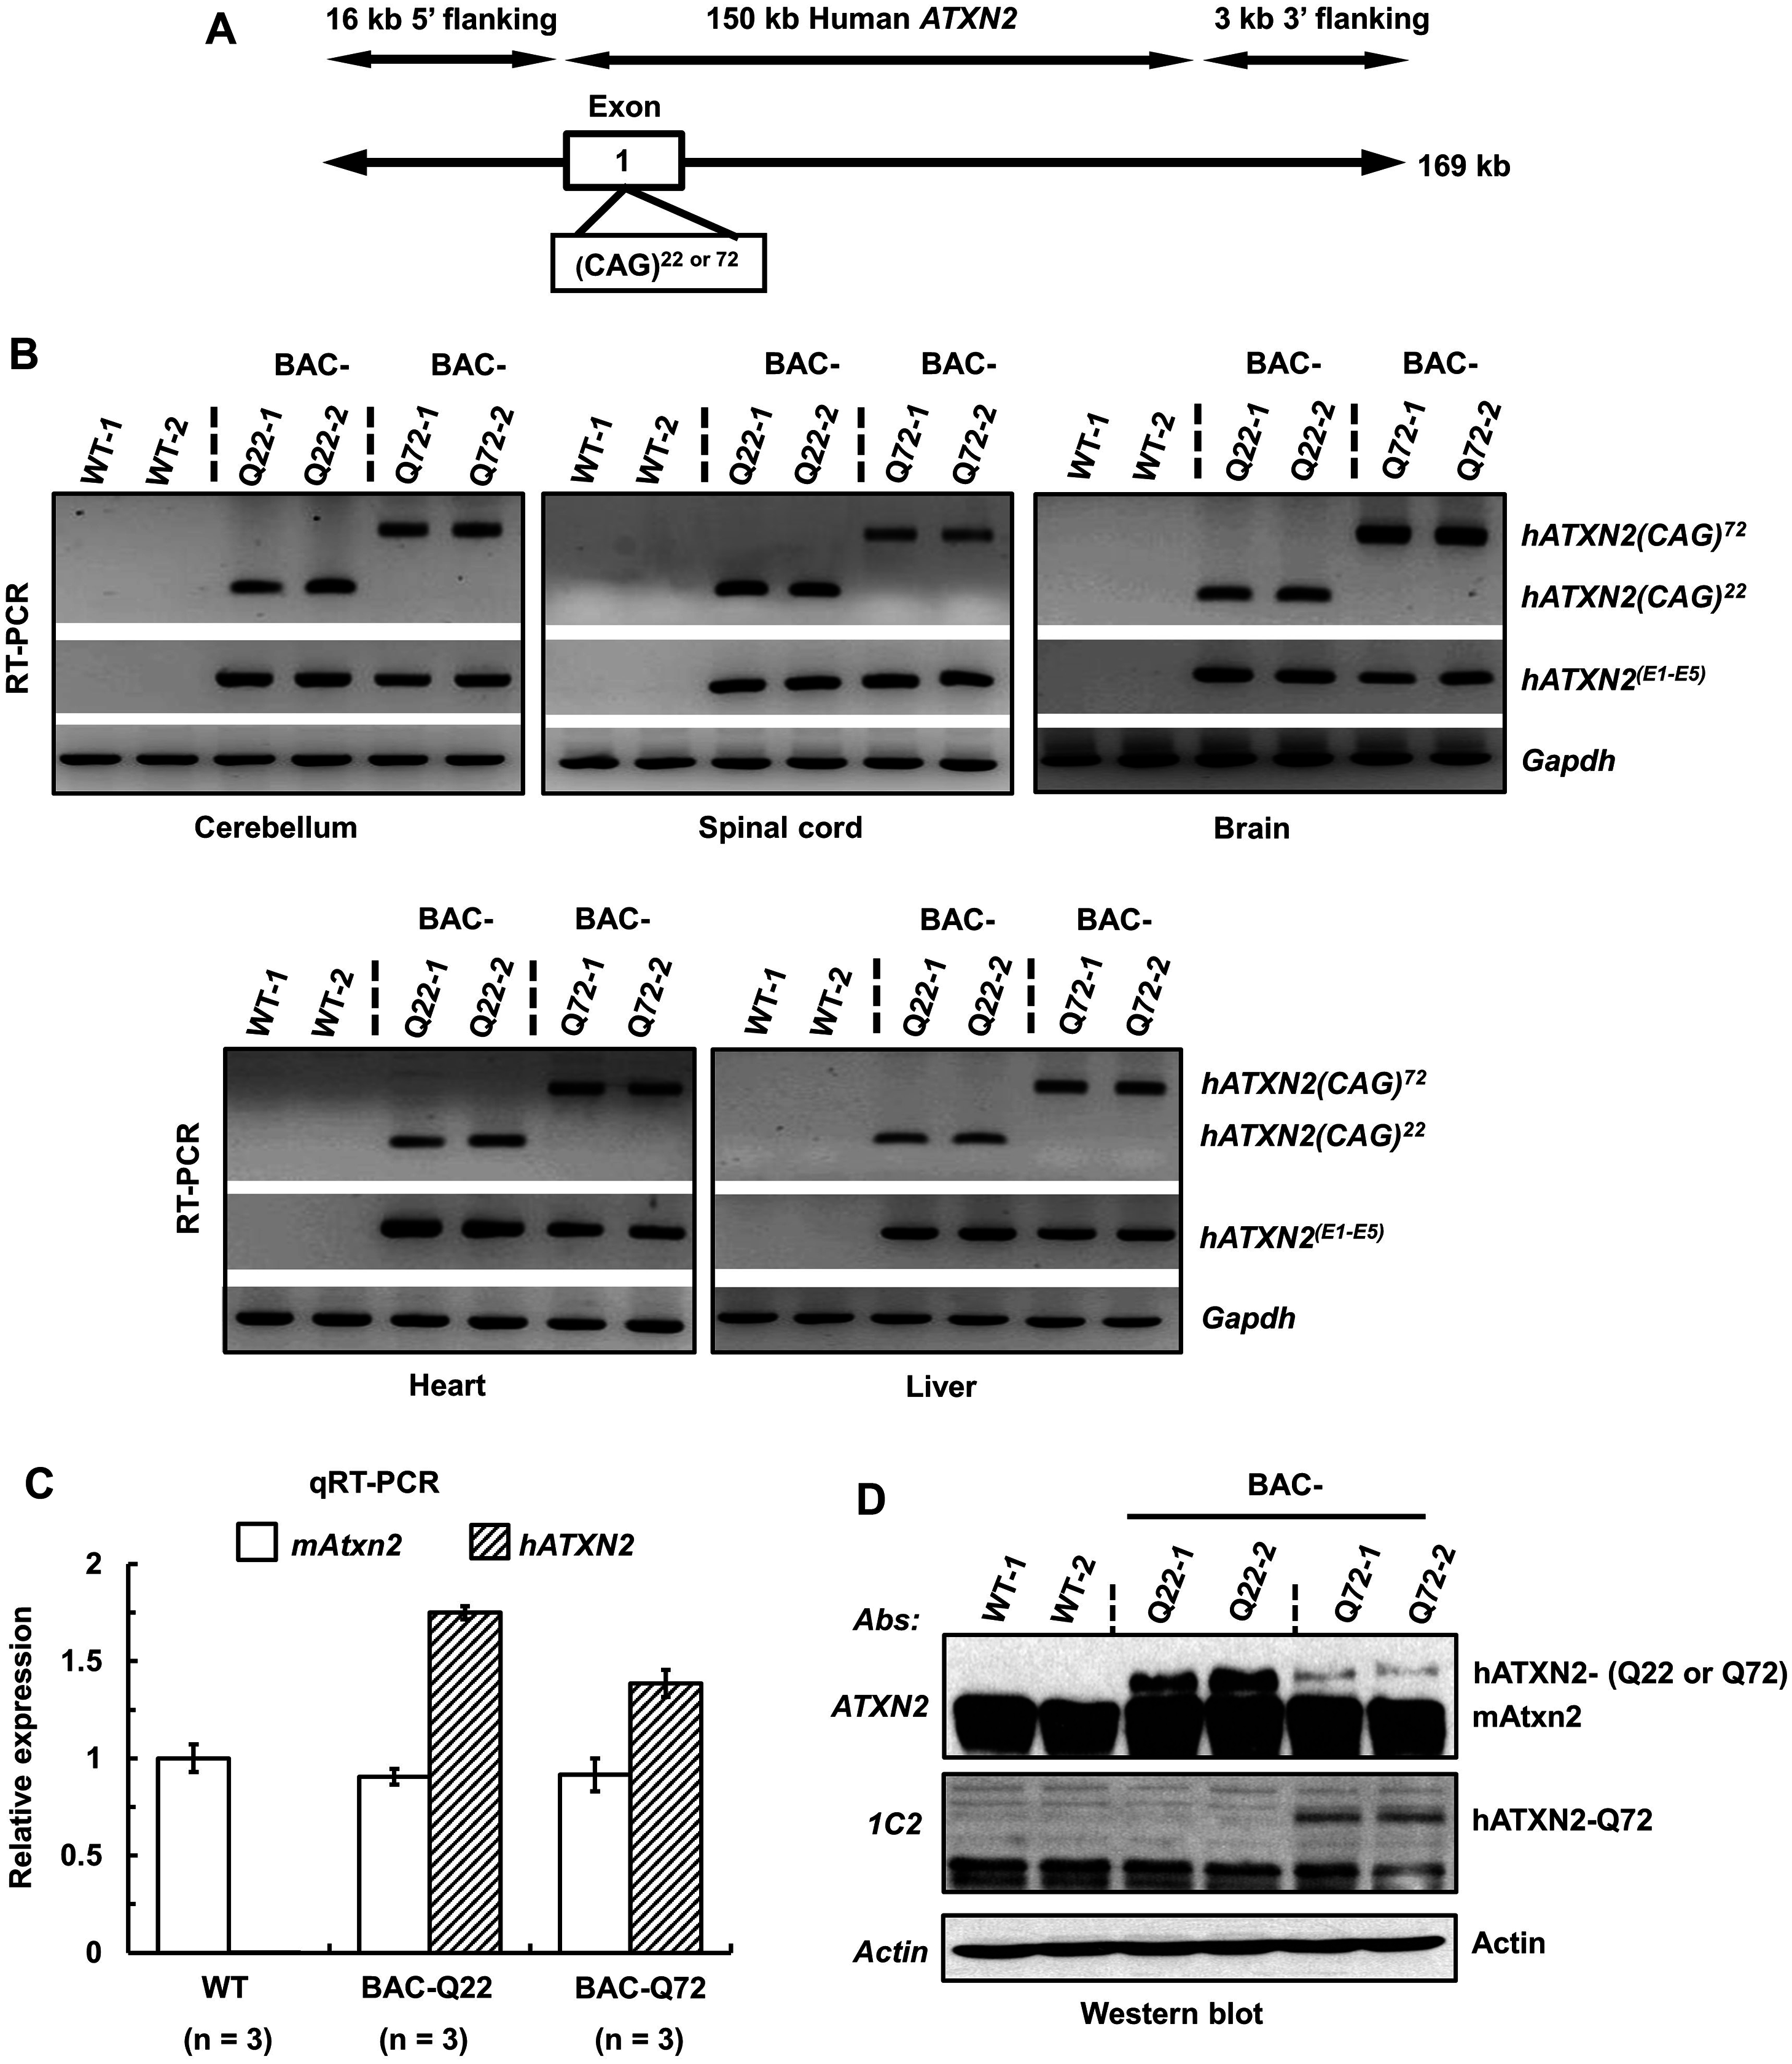 Generation of a BAC-SCA2 transgenic mouse model.